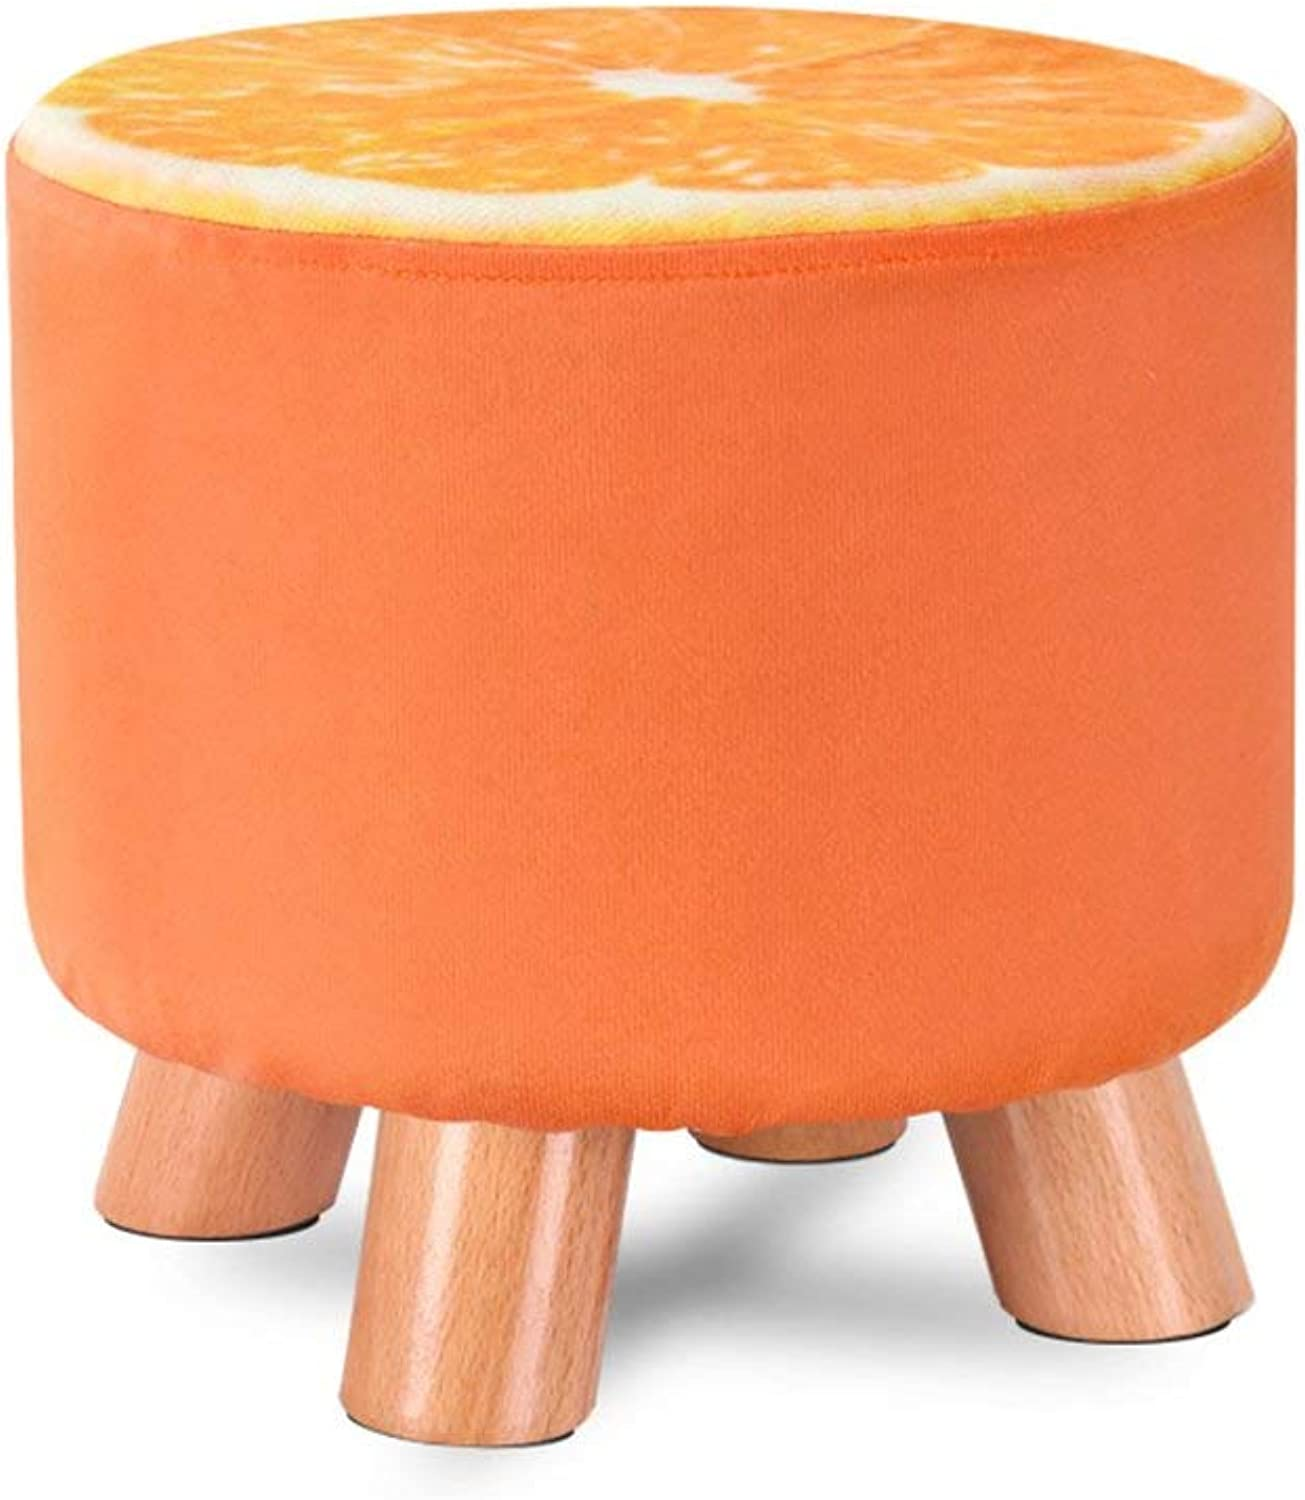 GJD Sofa Stool Solid Wood shoes Bench shoes Bench Cloth Art Stool Tea Table Bench Home Stool Diameter 28× Height 25cm Strong and Sturdy Foldable Leather Sofa Stool (color    3)